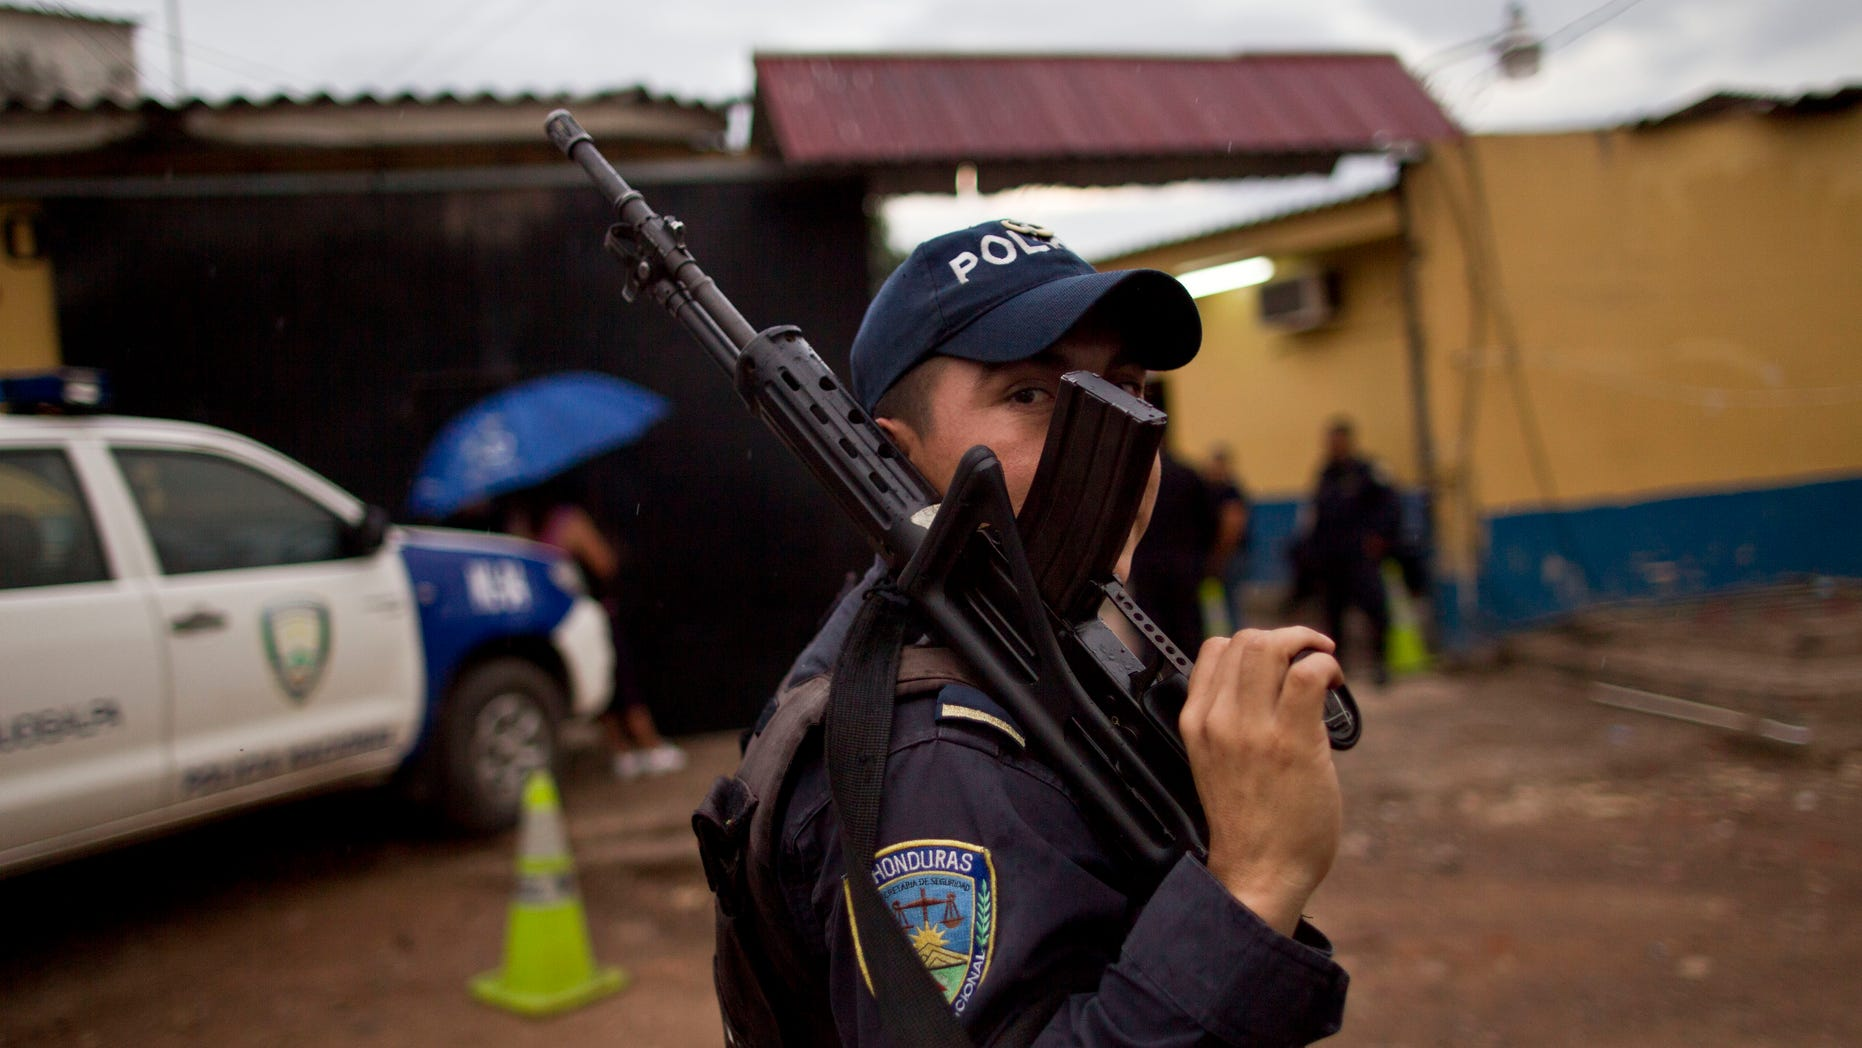 In this June 1, 2013 photo, a National Police officer looks from behind his weapon during an operative outside a police station near El Mayoreo markert in Tegucigalpa, Honduras. The government of Honduras launched an unprecedented effort last year to clean up a U.S.-backed police force widely seen as deeply brutal and corrupt. One by one, hundreds of police officers were subjected to polygraph tests administered by Colombian technicians funded by the U.S. government. Nearly four of every 10 officers failed the test in the first five months it was administered, some giving answers that indicated that they had, among other violations, tortured suspects, accepted bribes and taken drugs, according to a confidential U.S. document provided to The Associated Press. (AP Photo/Esteban Felix)